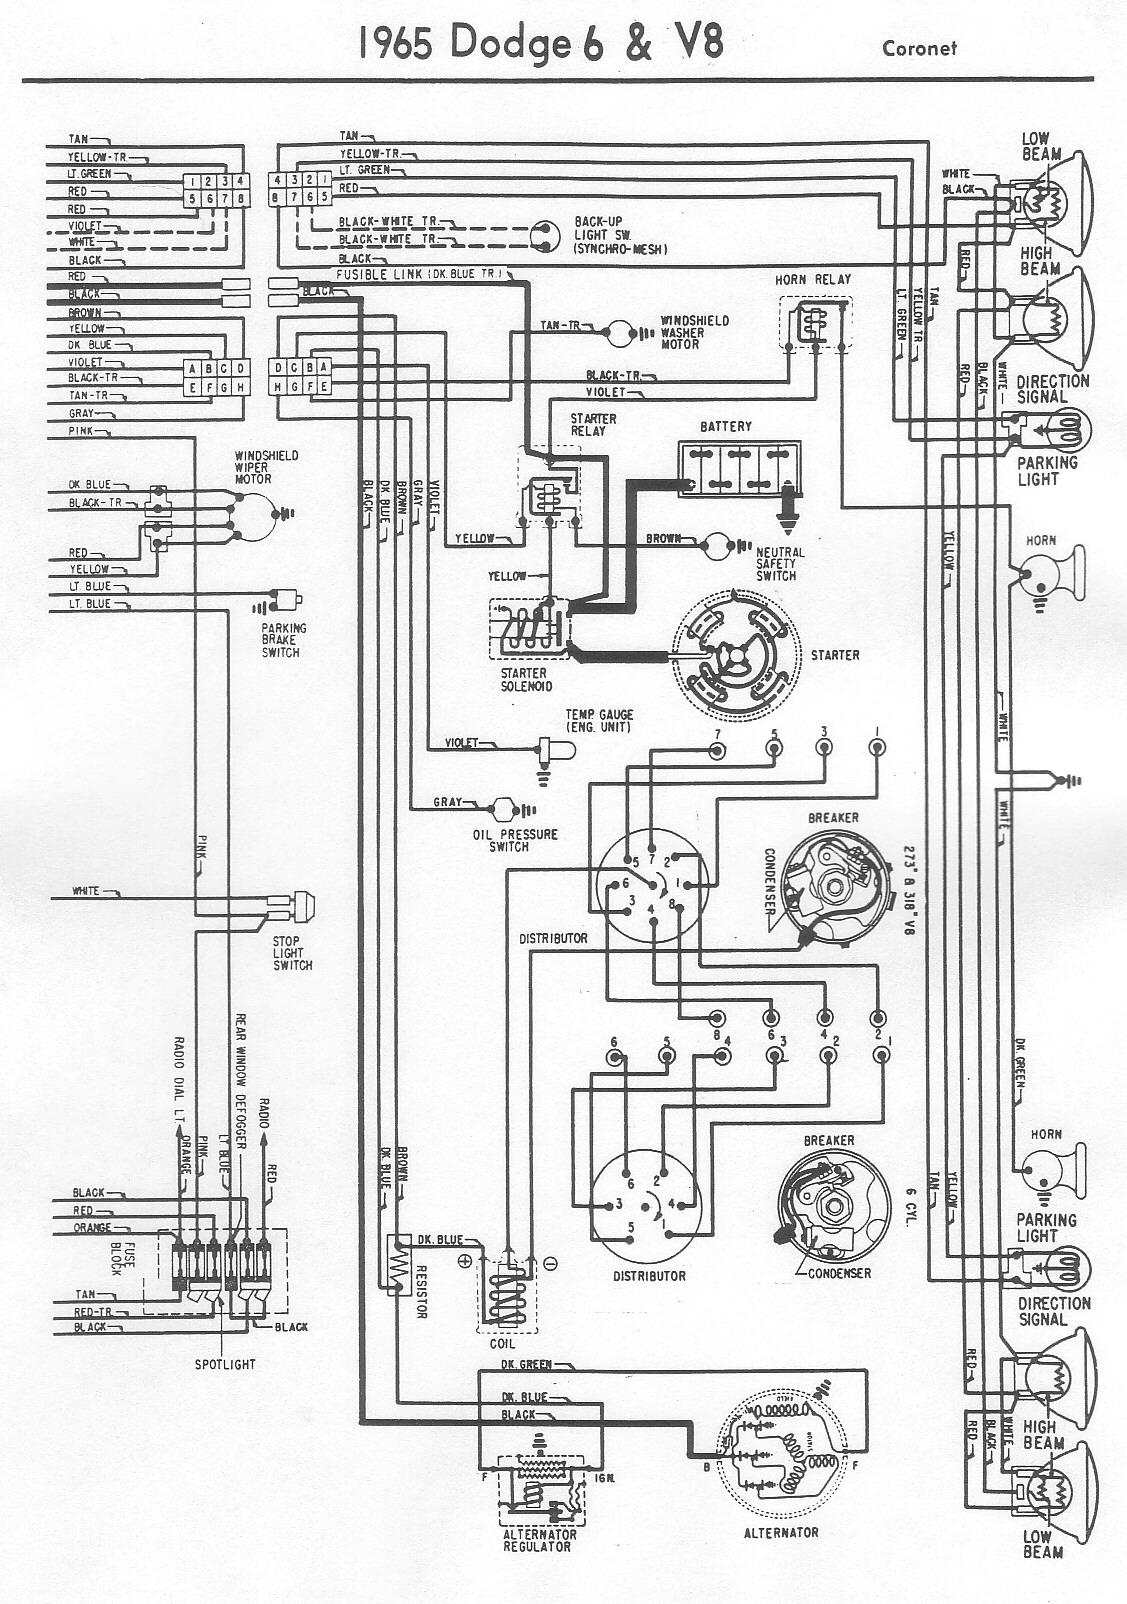 hight resolution of 1963 plymouth wiring diagram wiring library 1963 cadillac wiring diagram 1963 plymouth wiring diagram